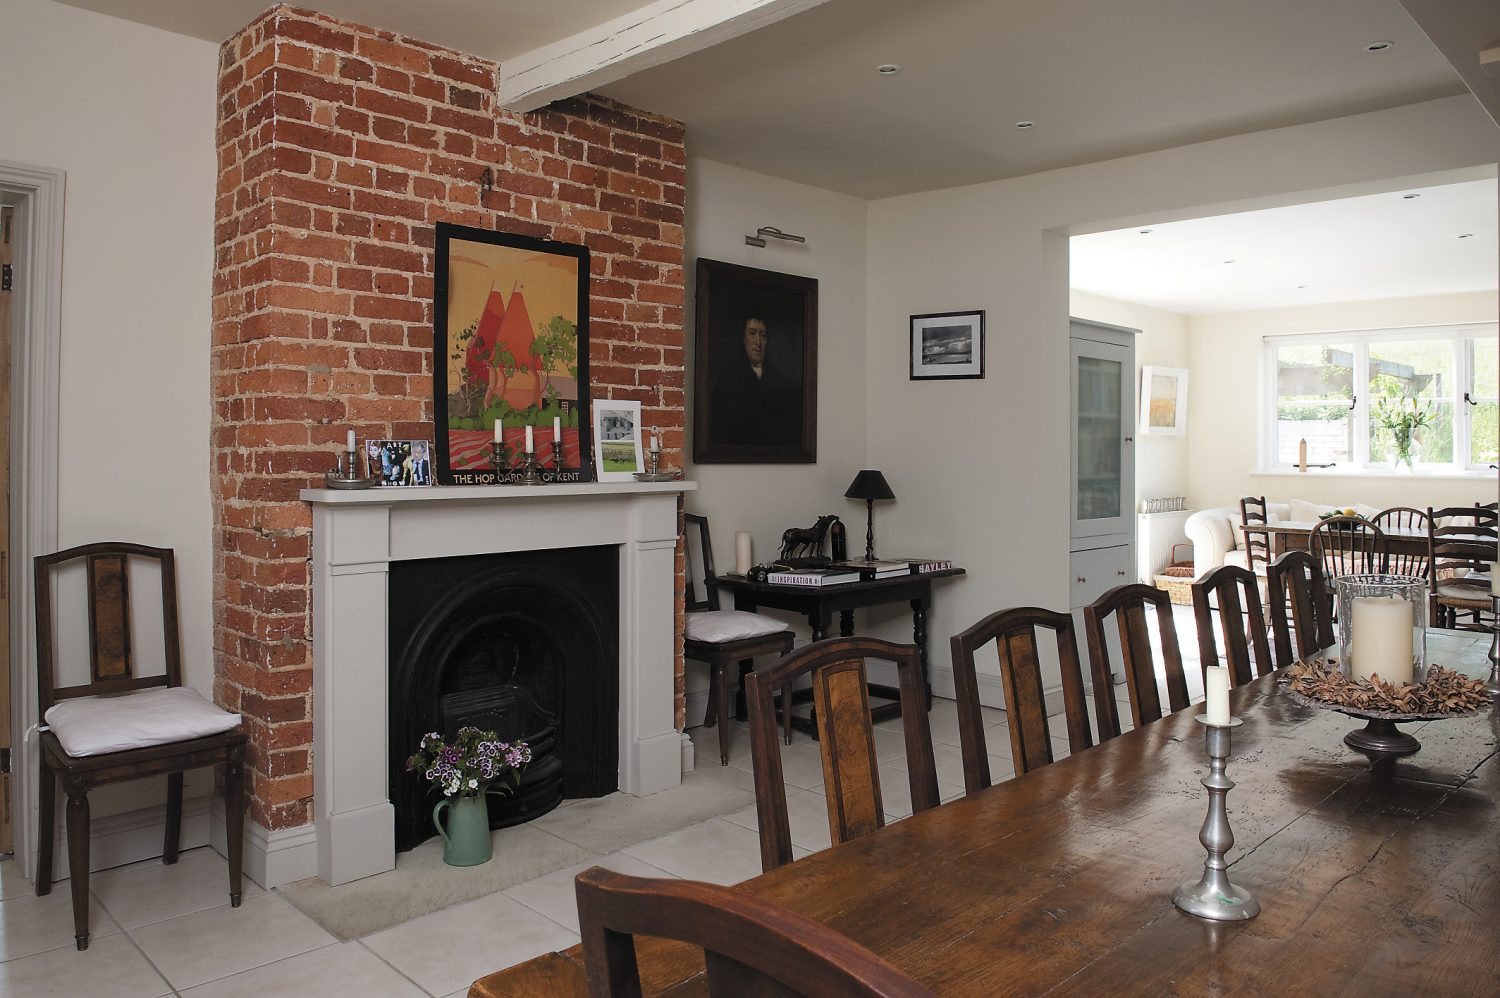 The spacious dining room leads off the kitchen. The poster of Kentish hop gardens above the fireplace is a former advertisement for British Rail; one of Mary's grandfather's thirteenth-century oak tables sits next to the fireplace